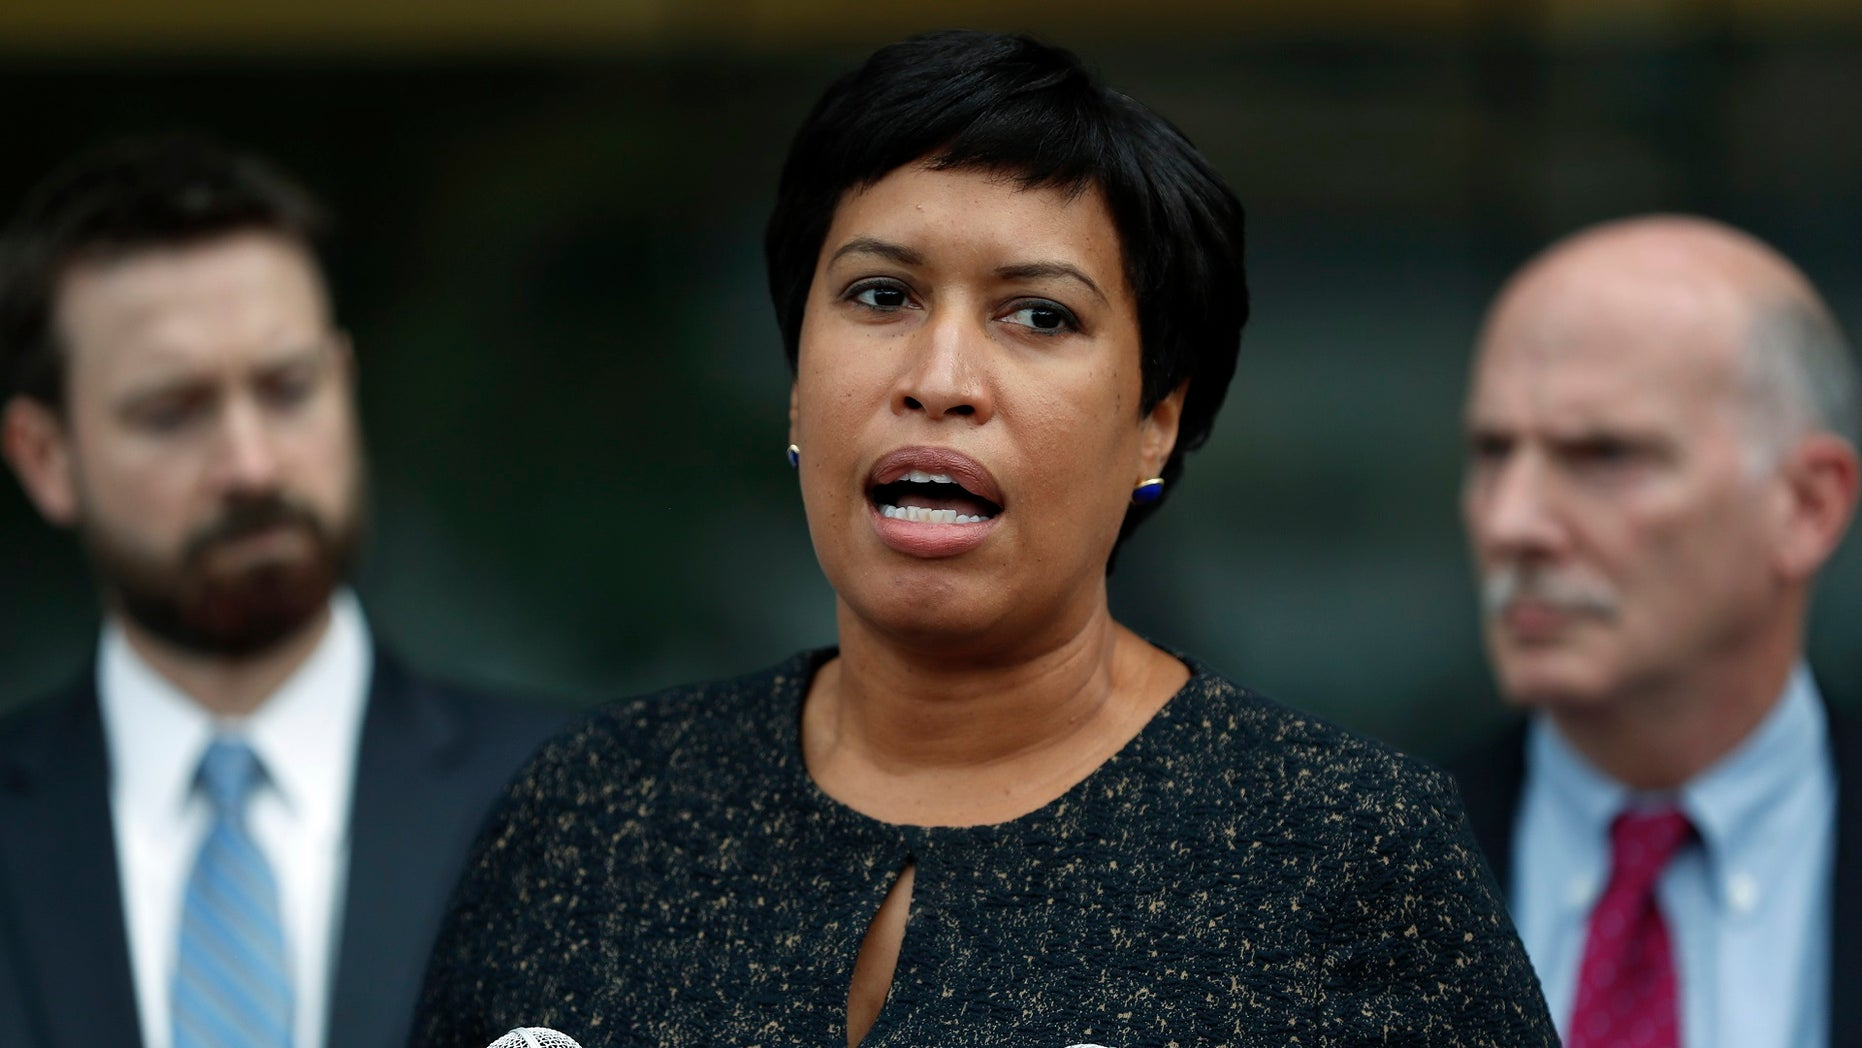 In this Oct. 5, 2017, file photo, District of Columbia Mayor Muriel Bowser speaks in Washington. The mayor of the nation's capital is a mom after adopting a newborn. Bowser announced the adoption in a statement on Monday, May 21, 2018.